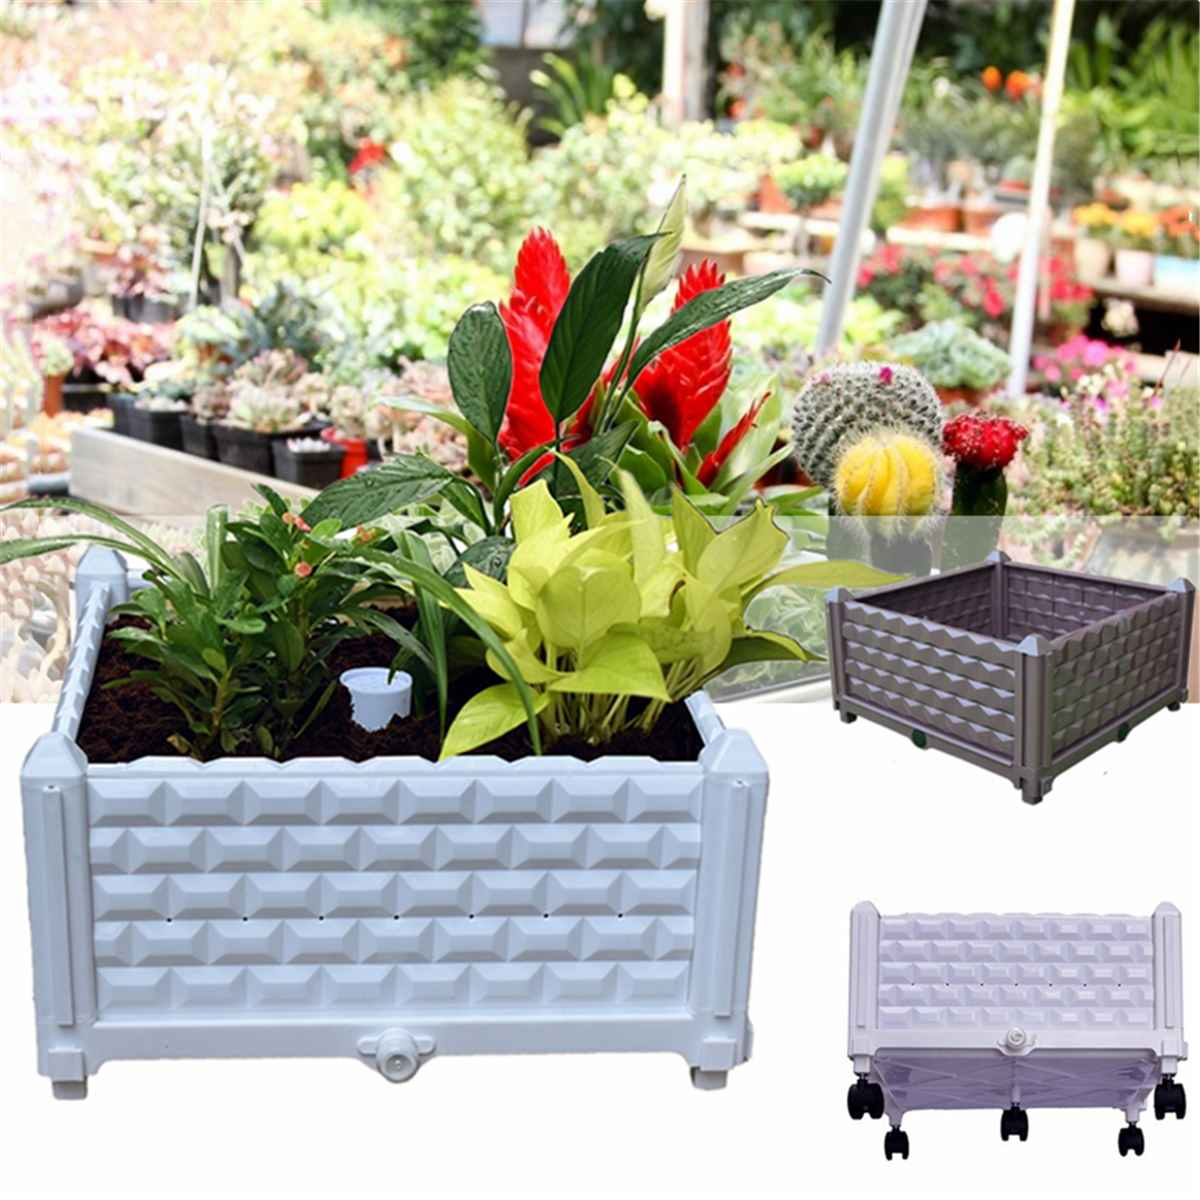 Planting Container Grow Bags Breathable Durable Plastic